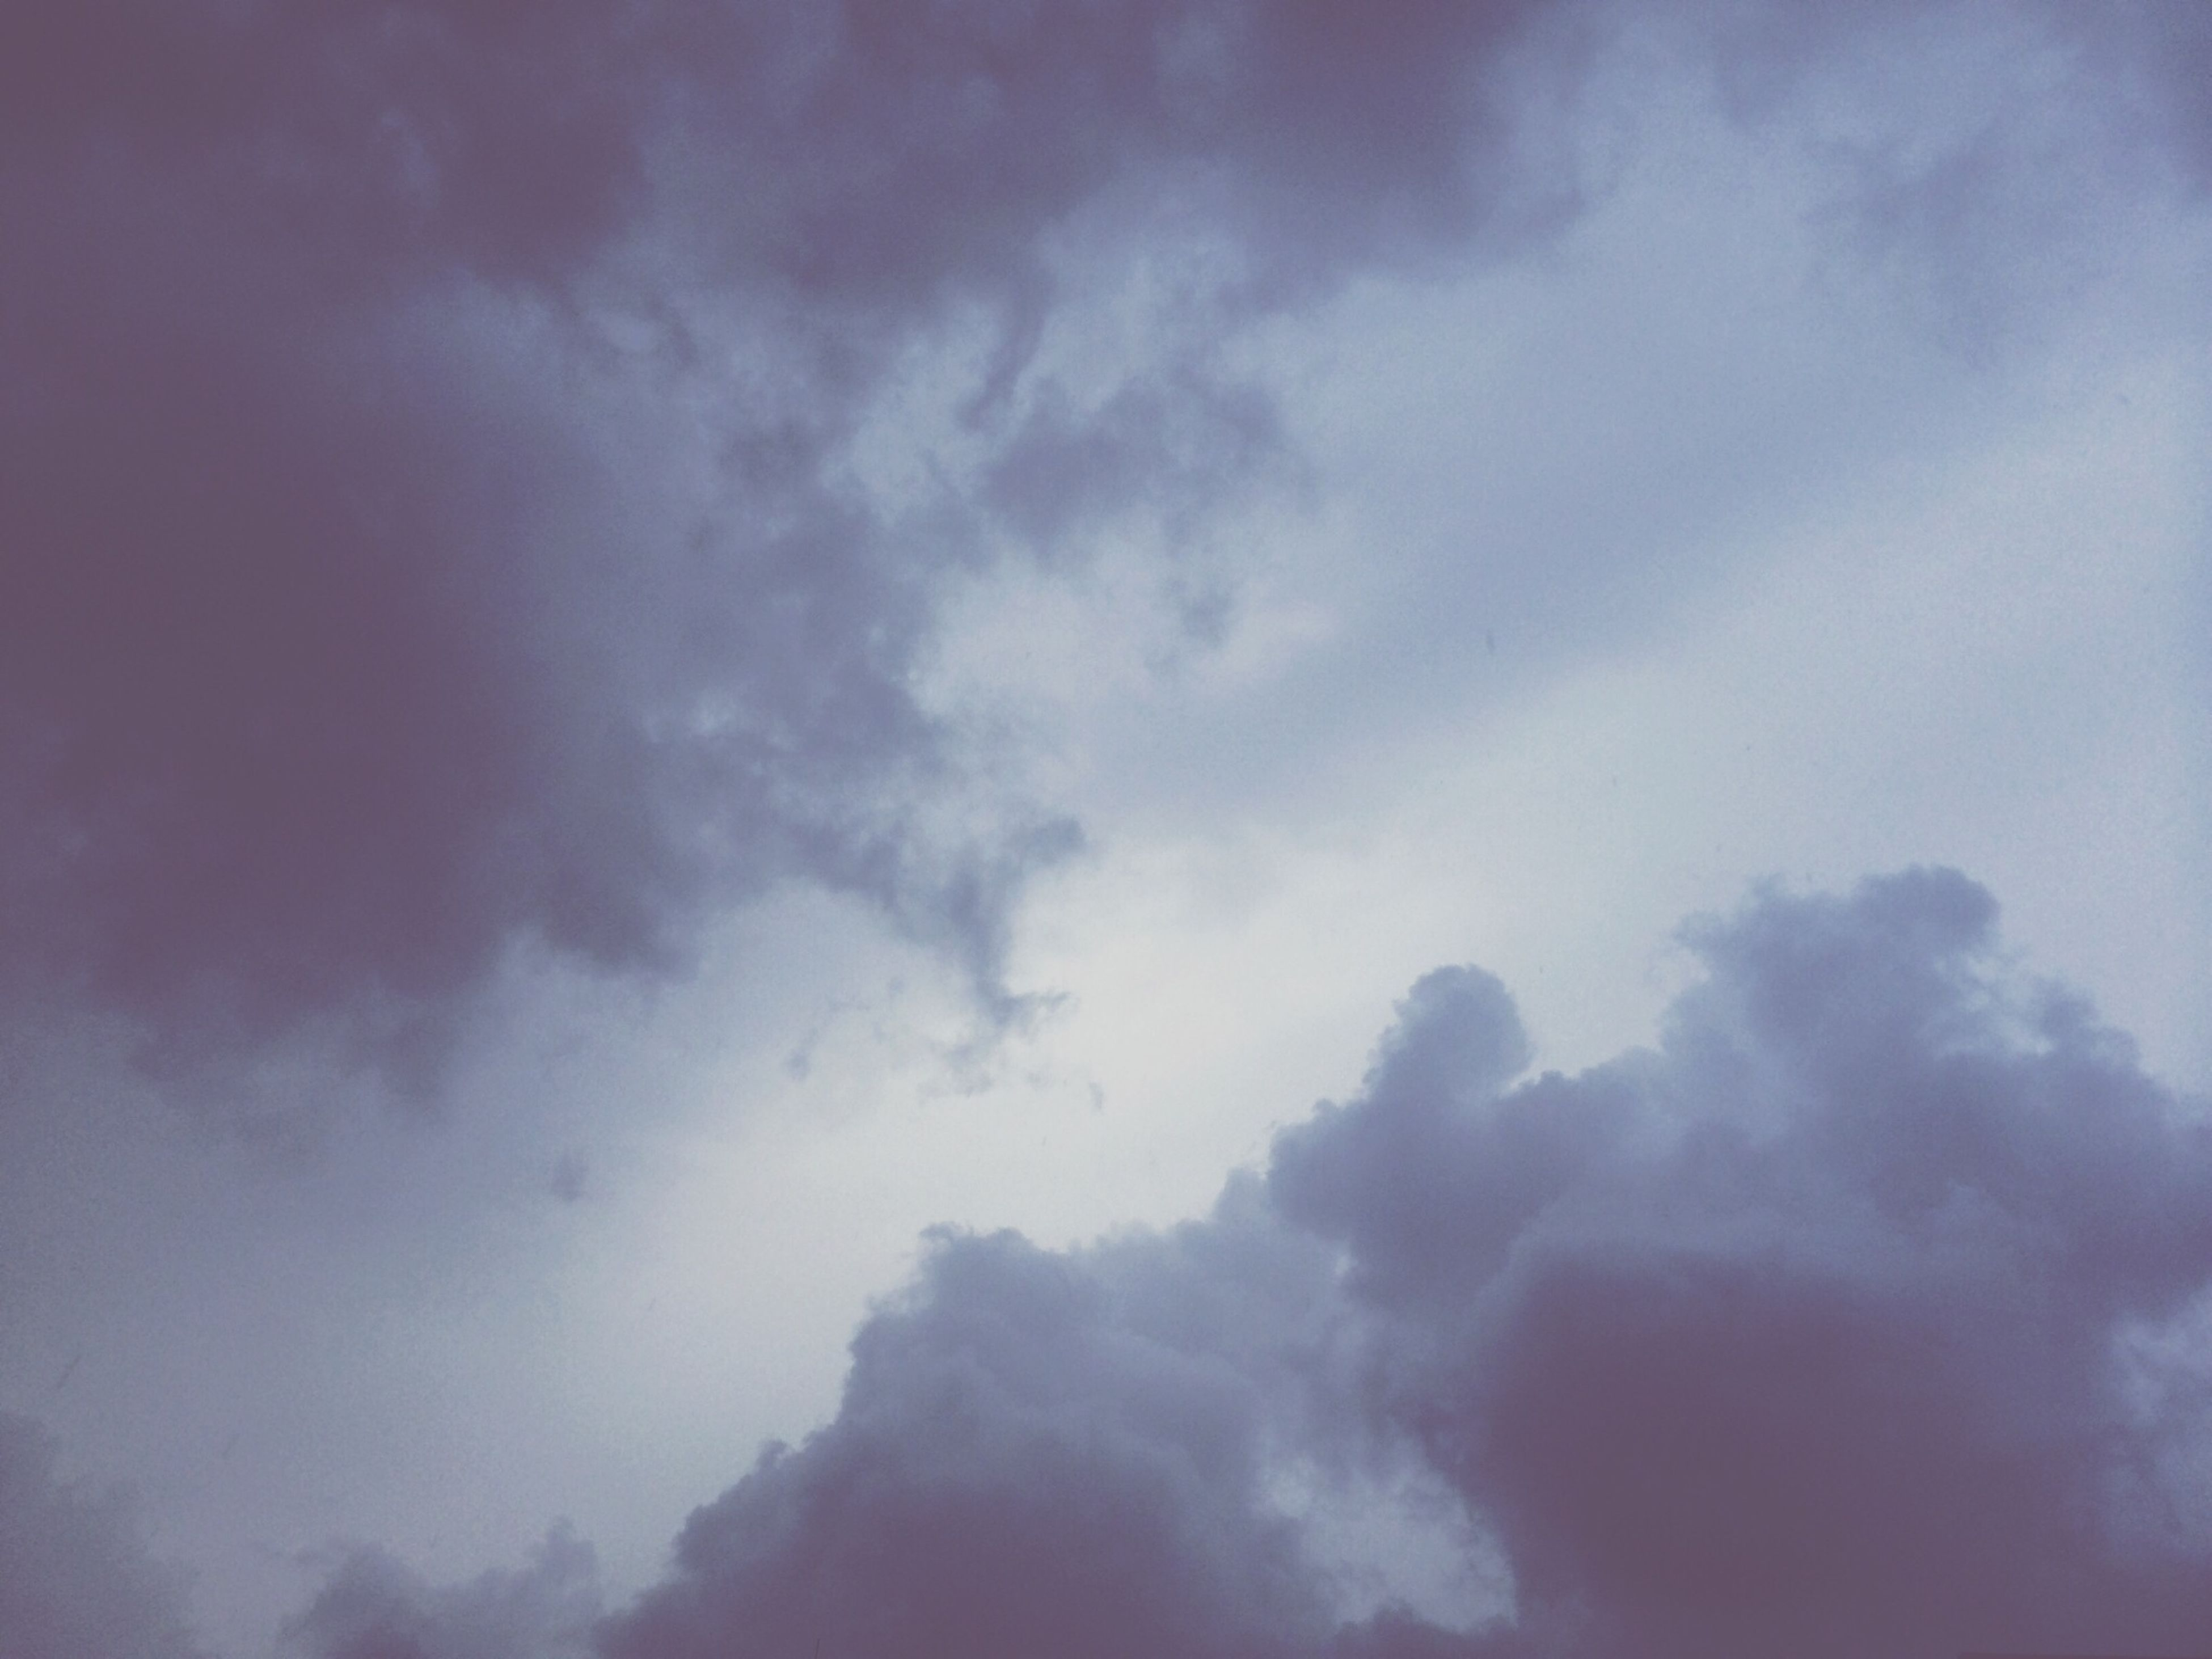 sky, cloud - sky, low angle view, cloudy, beauty in nature, tranquility, scenics, nature, tranquil scene, cloud, weather, cloudscape, idyllic, sky only, outdoors, no people, backgrounds, day, overcast, blue